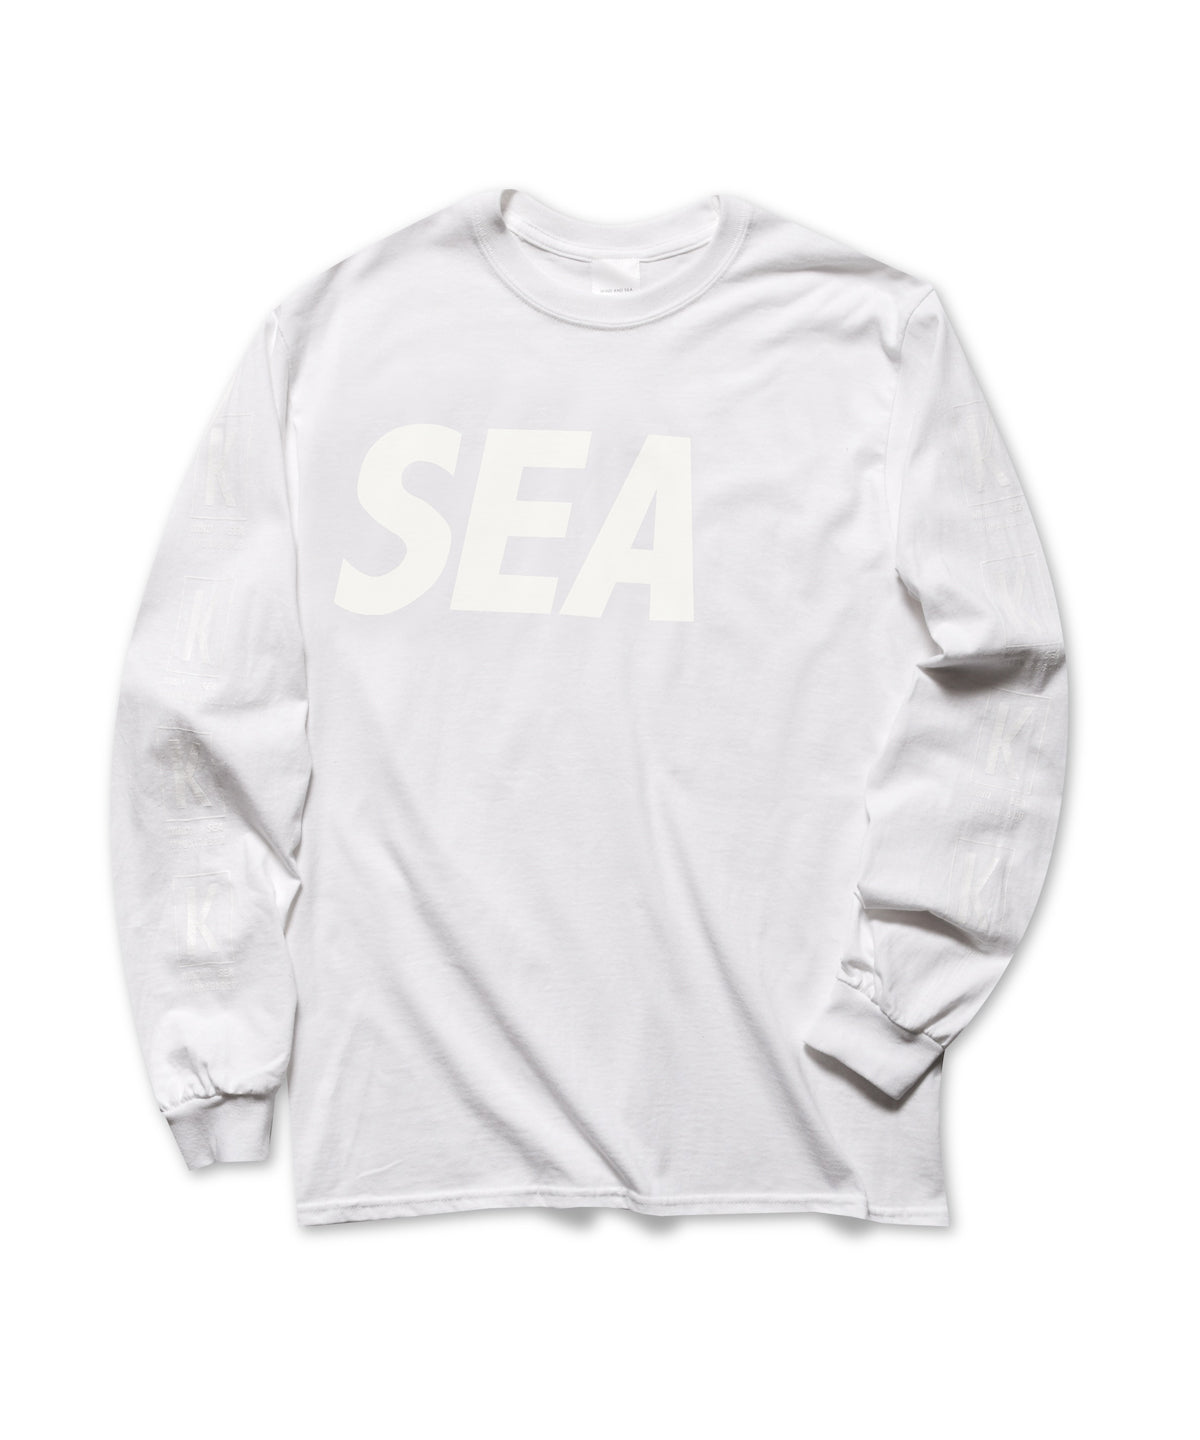 SEA WIND AND SLEEVE BOX LOGO L/S TEE